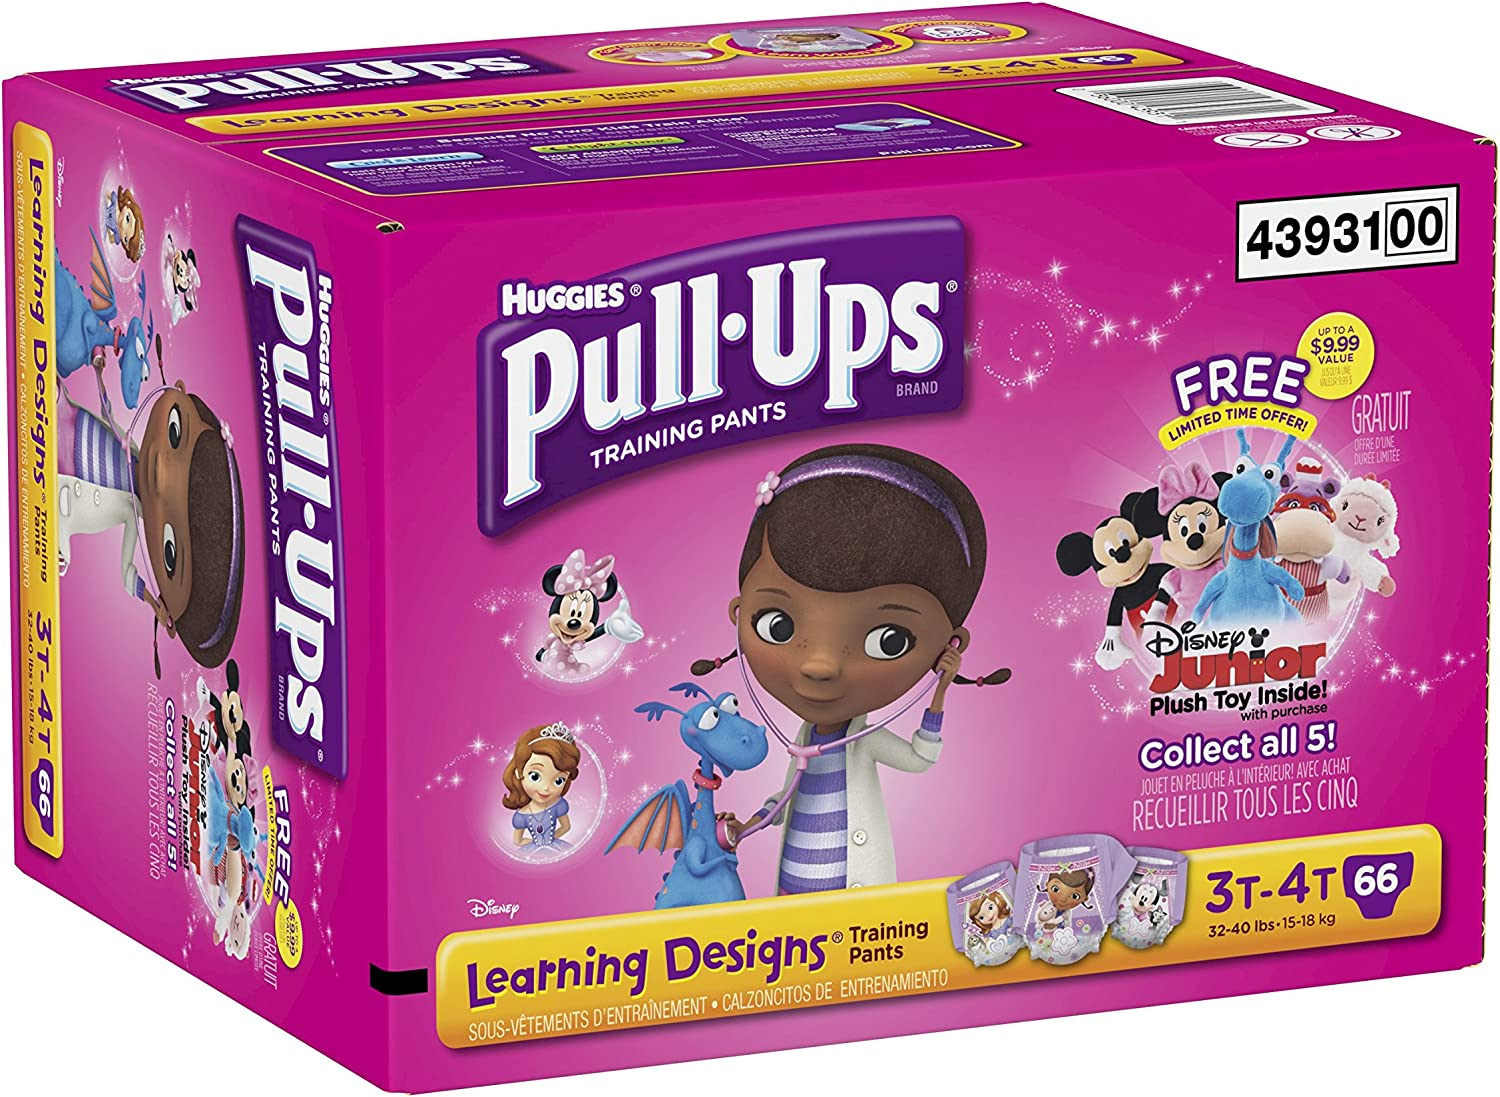 Pull-Ups Training Pants with Learning Designs for Girls, 3T-4T, 66 Count